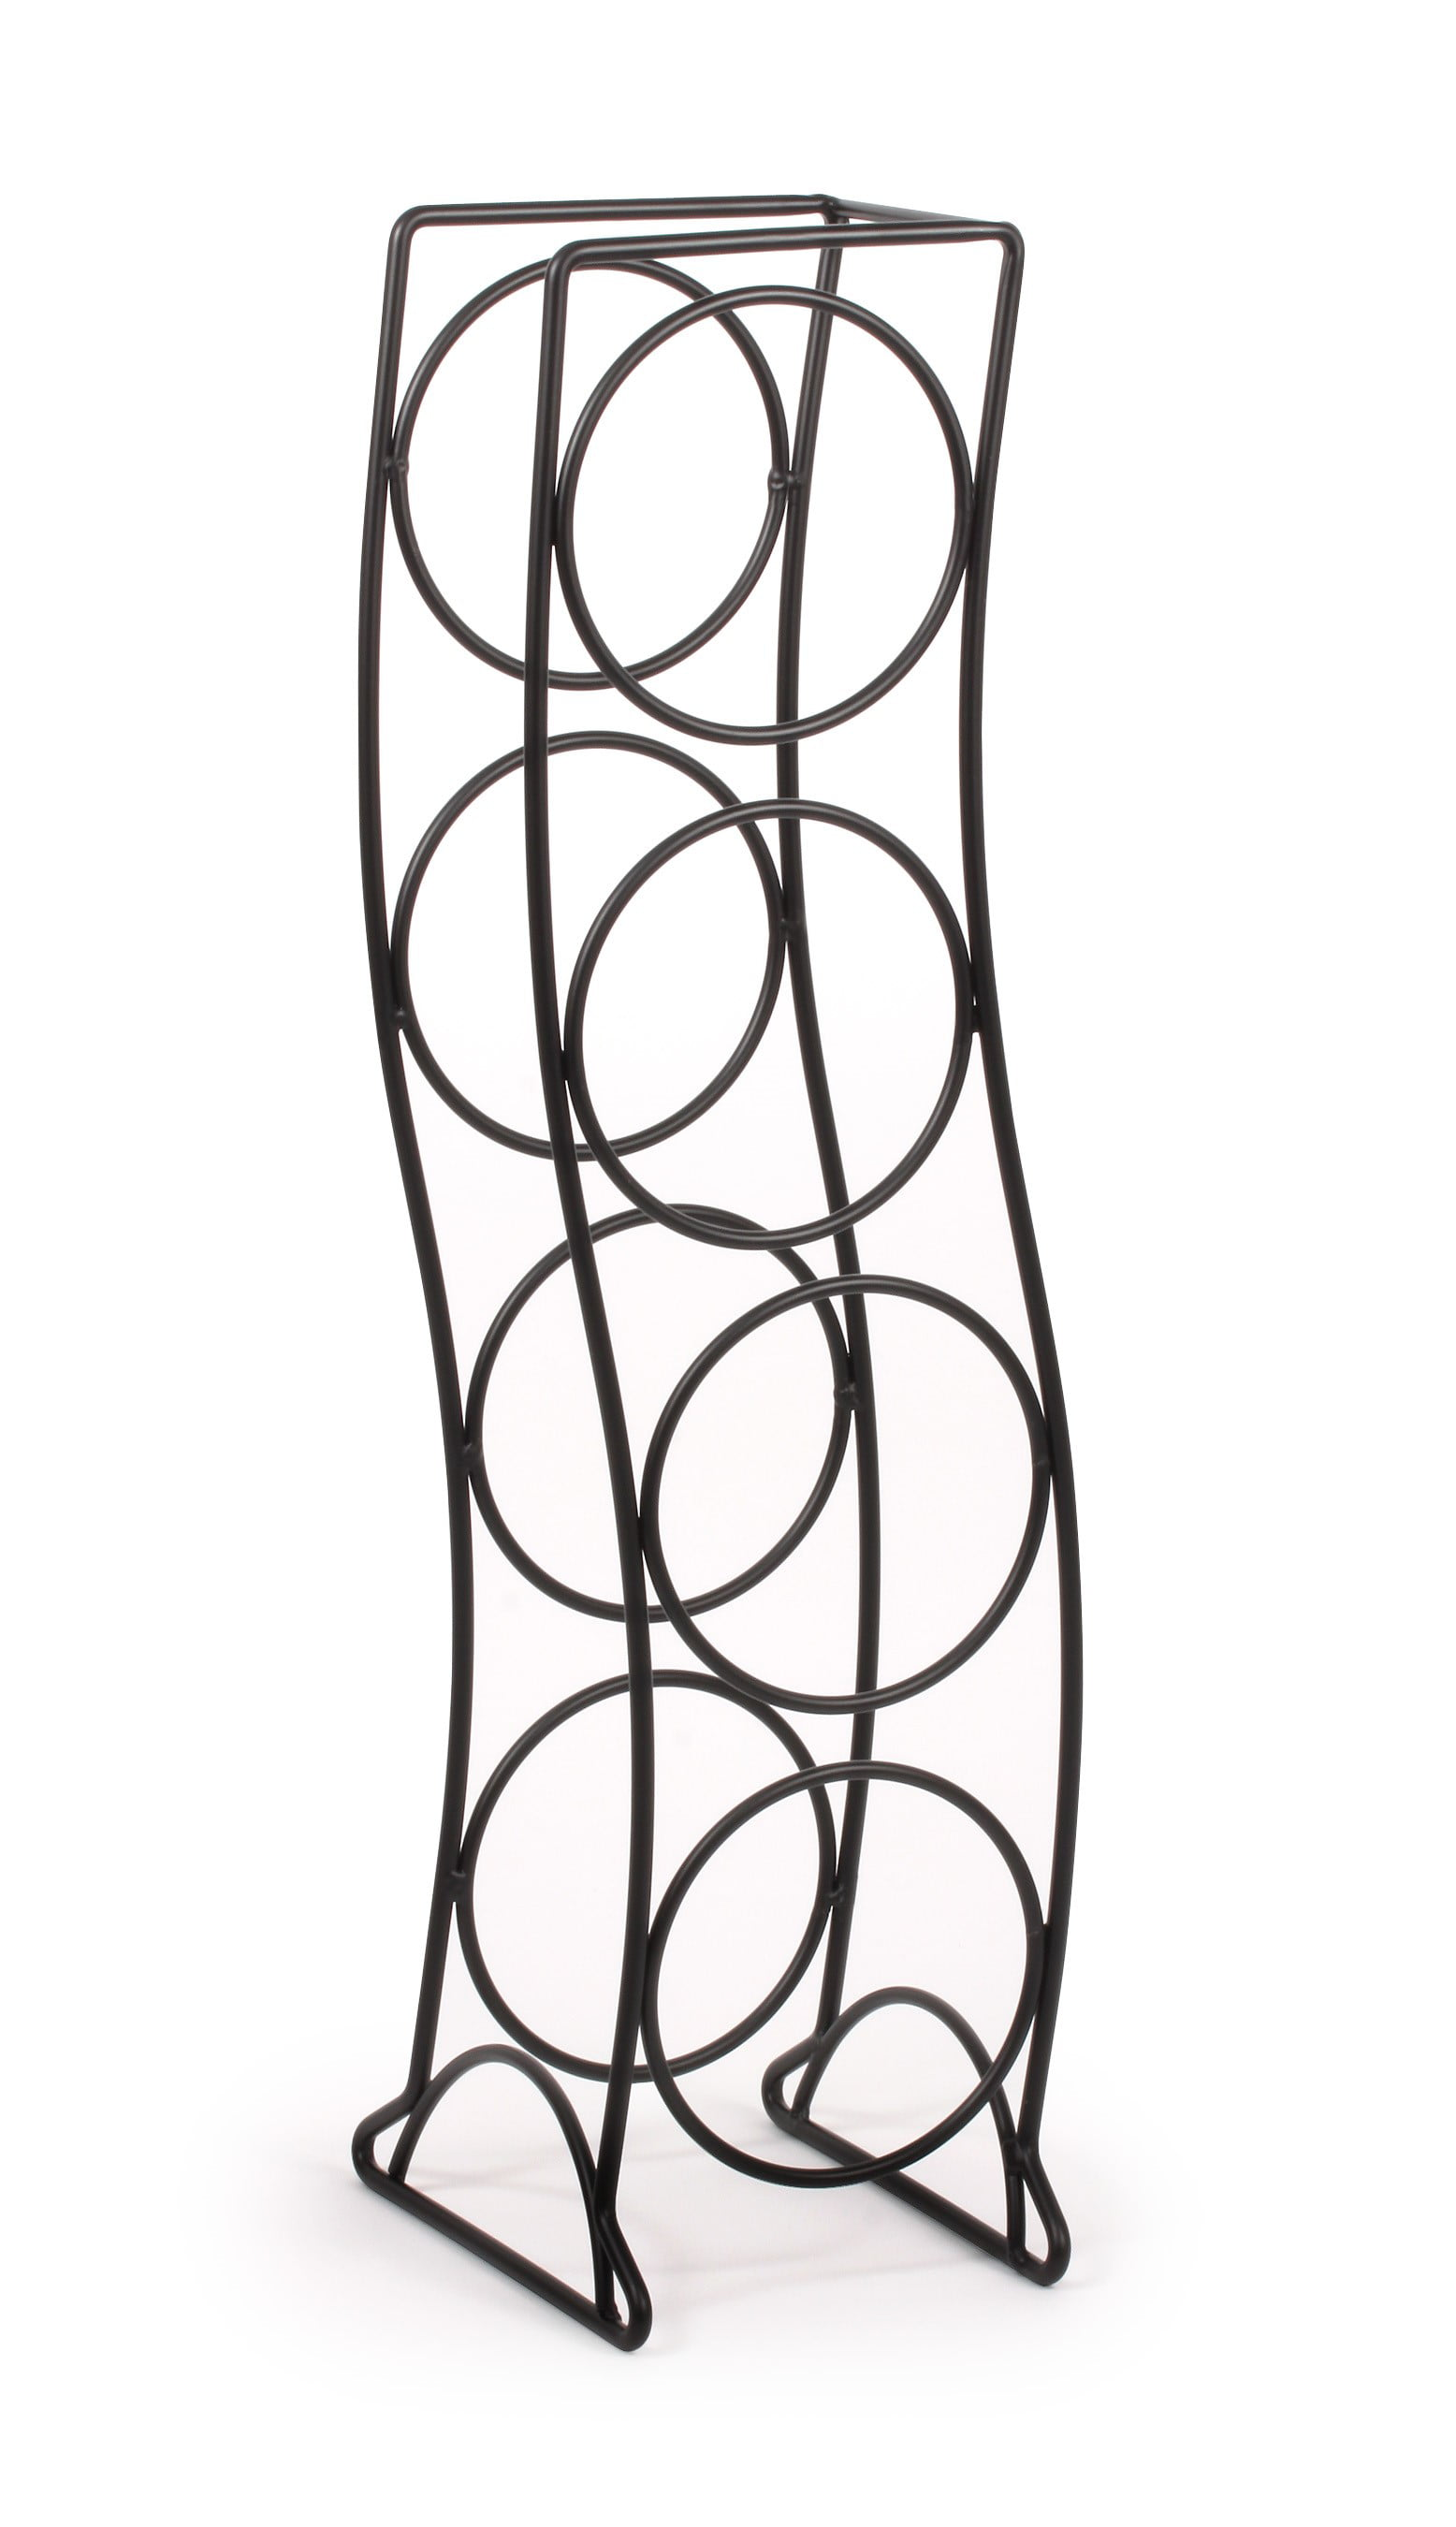 Spectrum Diversified Designs Curve 4 Bottle Wine Rack, Black by Spectrum Diversified Designs